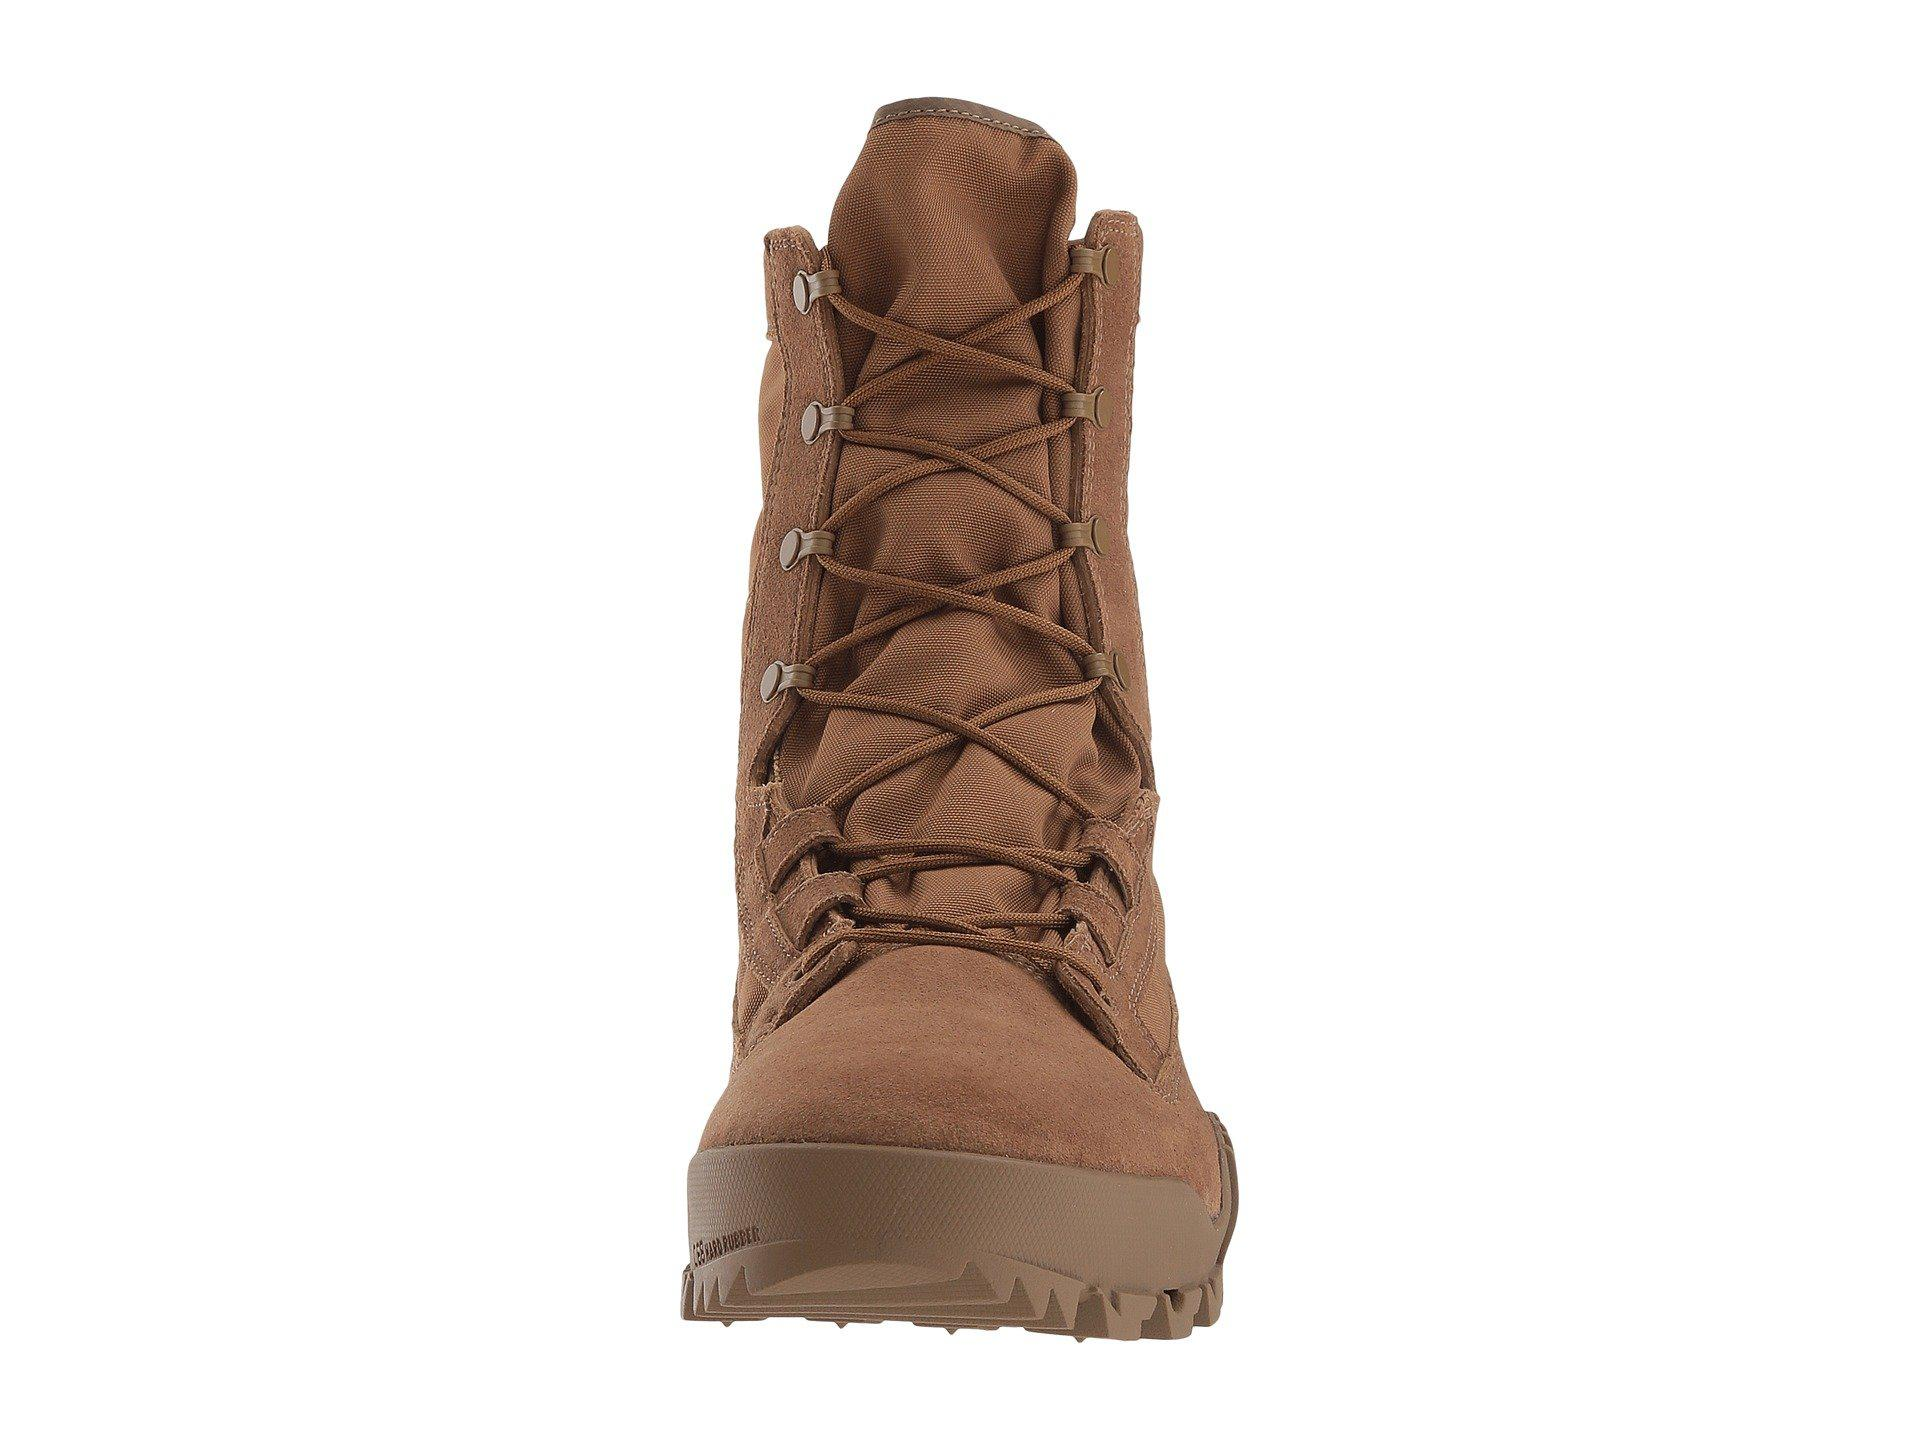 sports shoes 3e613 d37a2 Nike Sfb Jungle 8 Leather Boot (coyote/coyote) Men's Boots in Brown ...